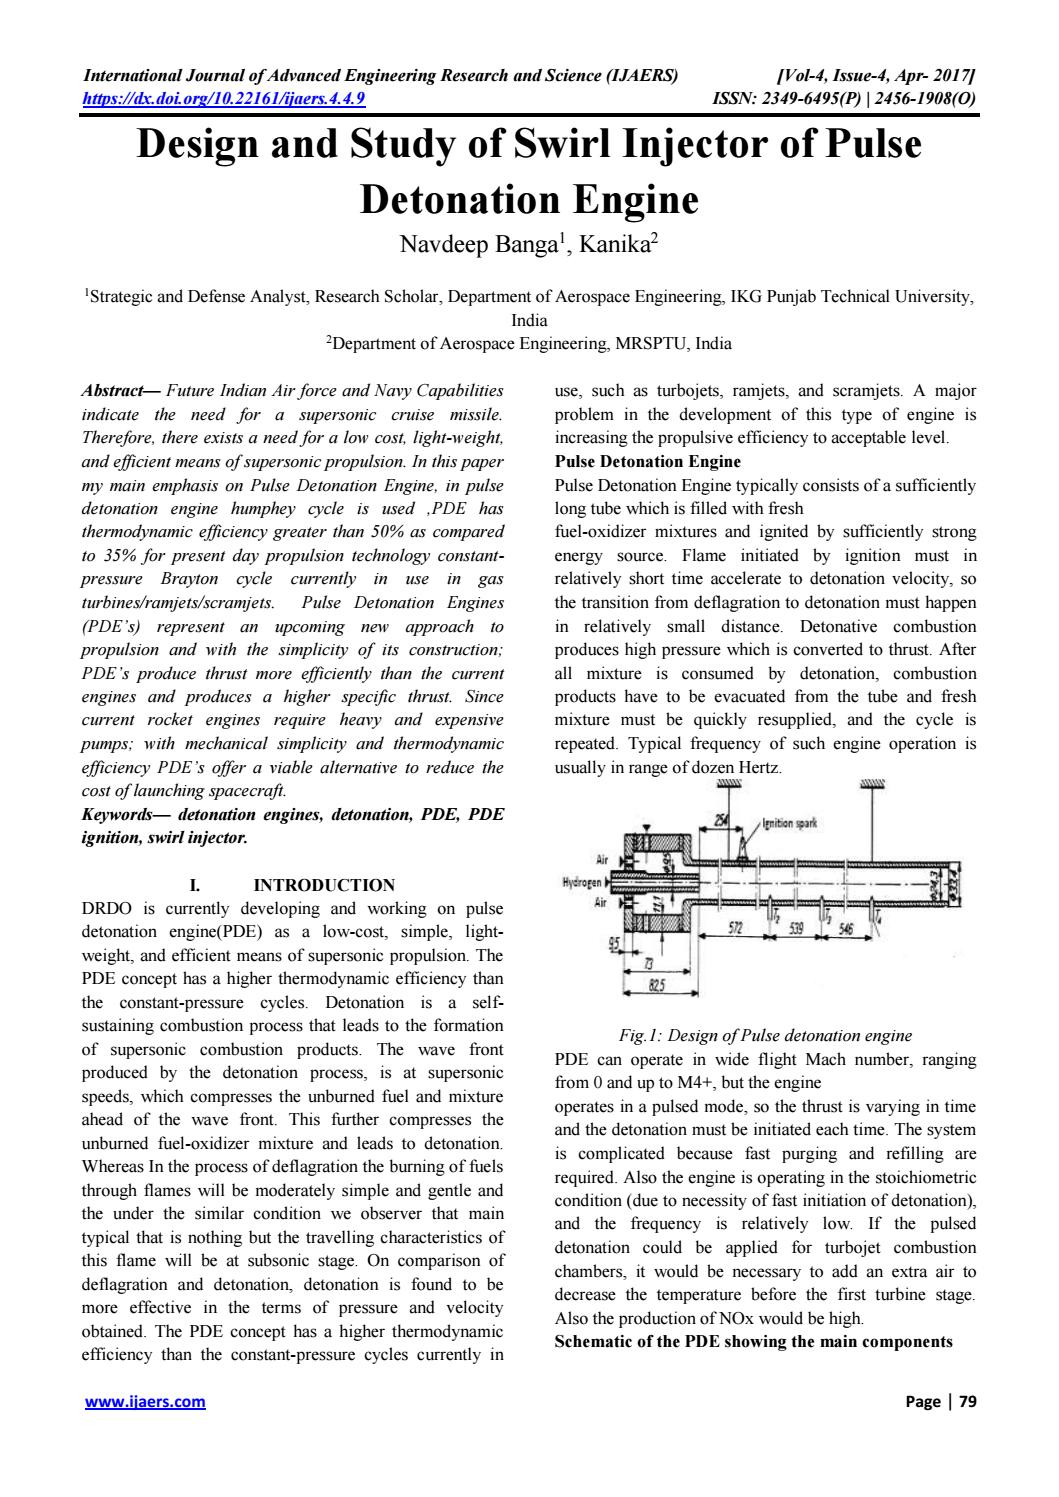 9 design and study of swirl injector of pulse detonation engine by